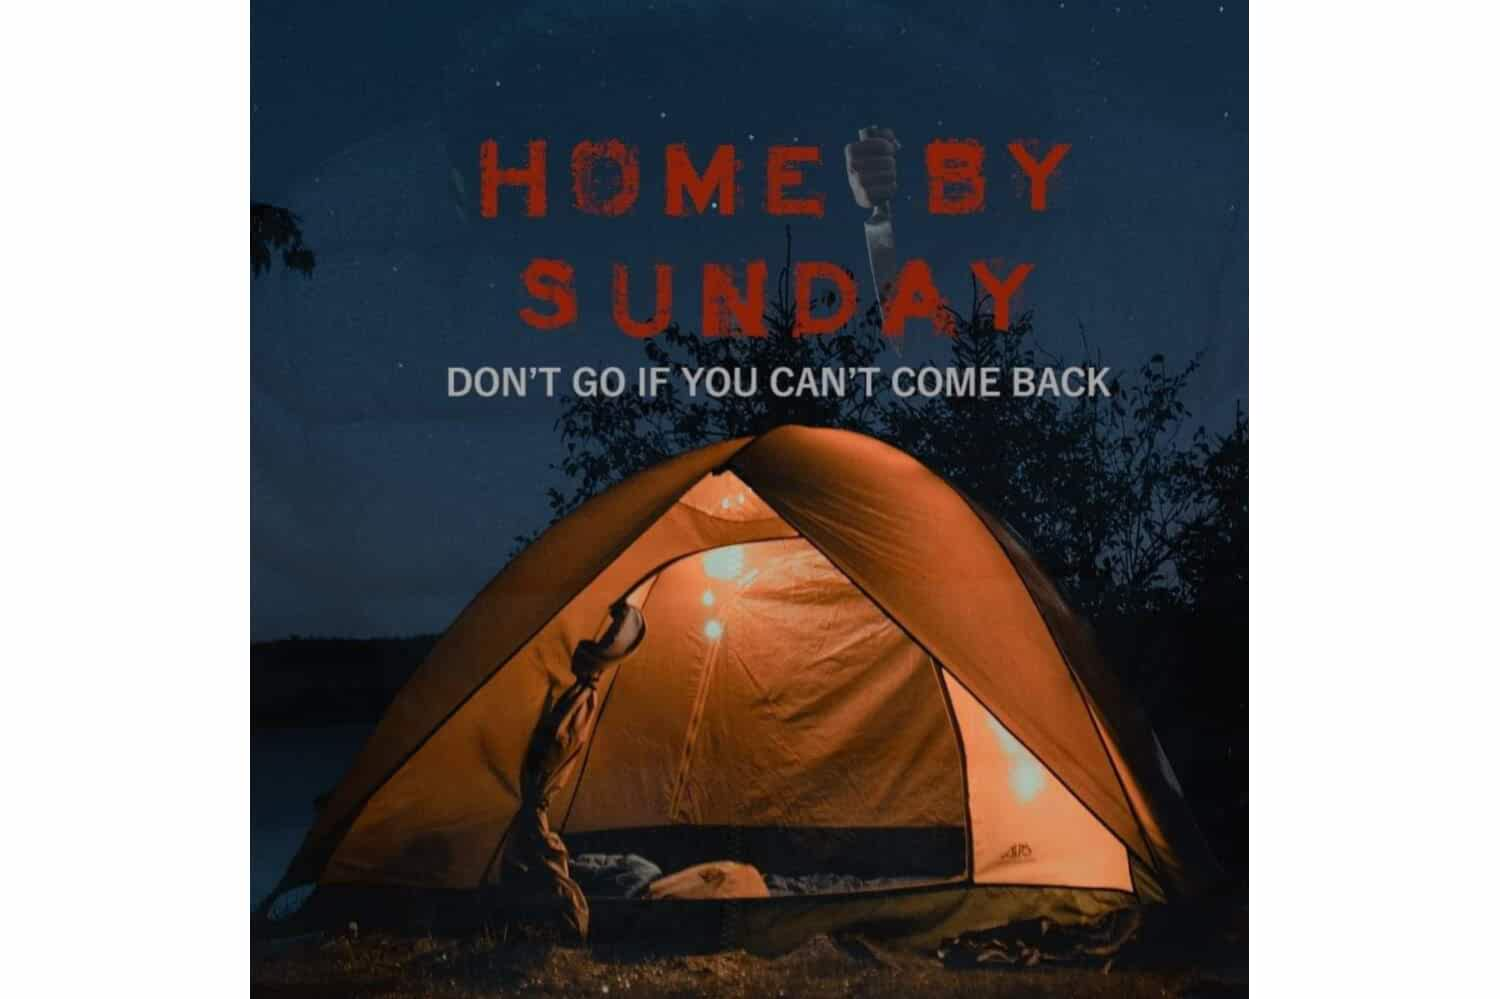 Home by Sunday (2019)